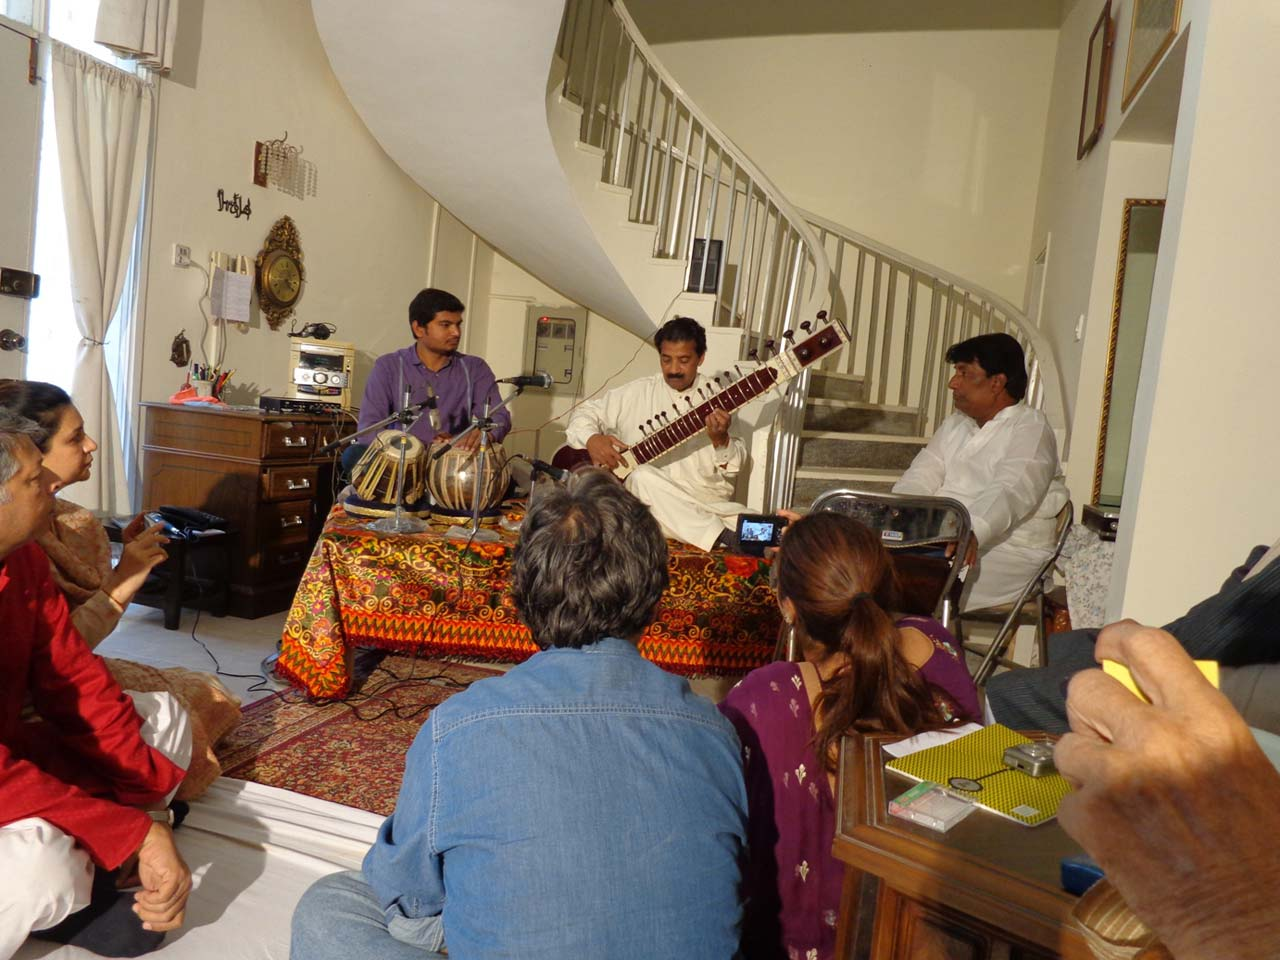 Ustad Saleem Khan is playing melodious tunes on sitar at the musical party